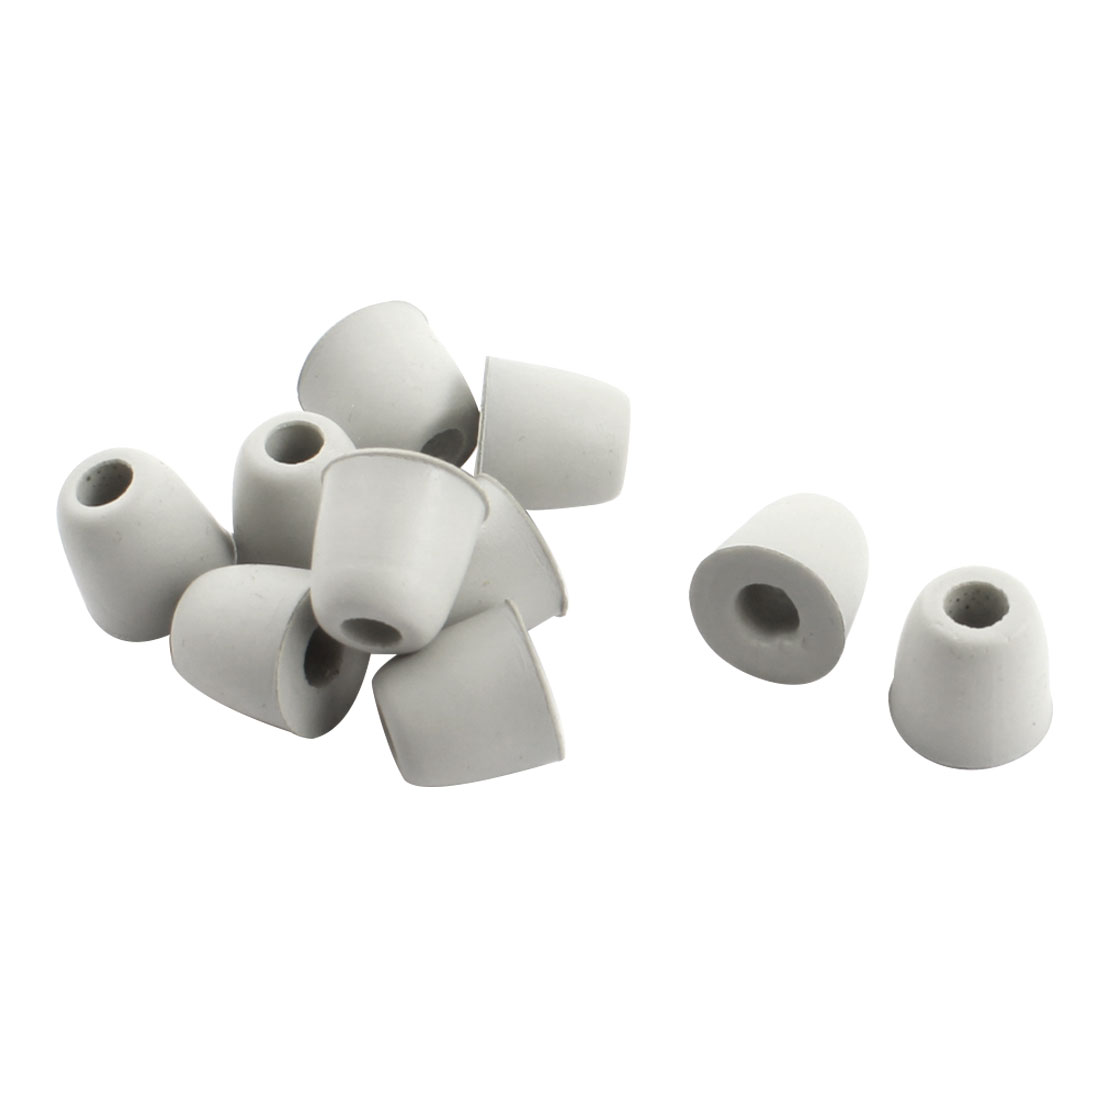 Noise Cancellation Soft Memory Foam Earbud Eartips Replacement Gray 5mm Dia 10Pcs